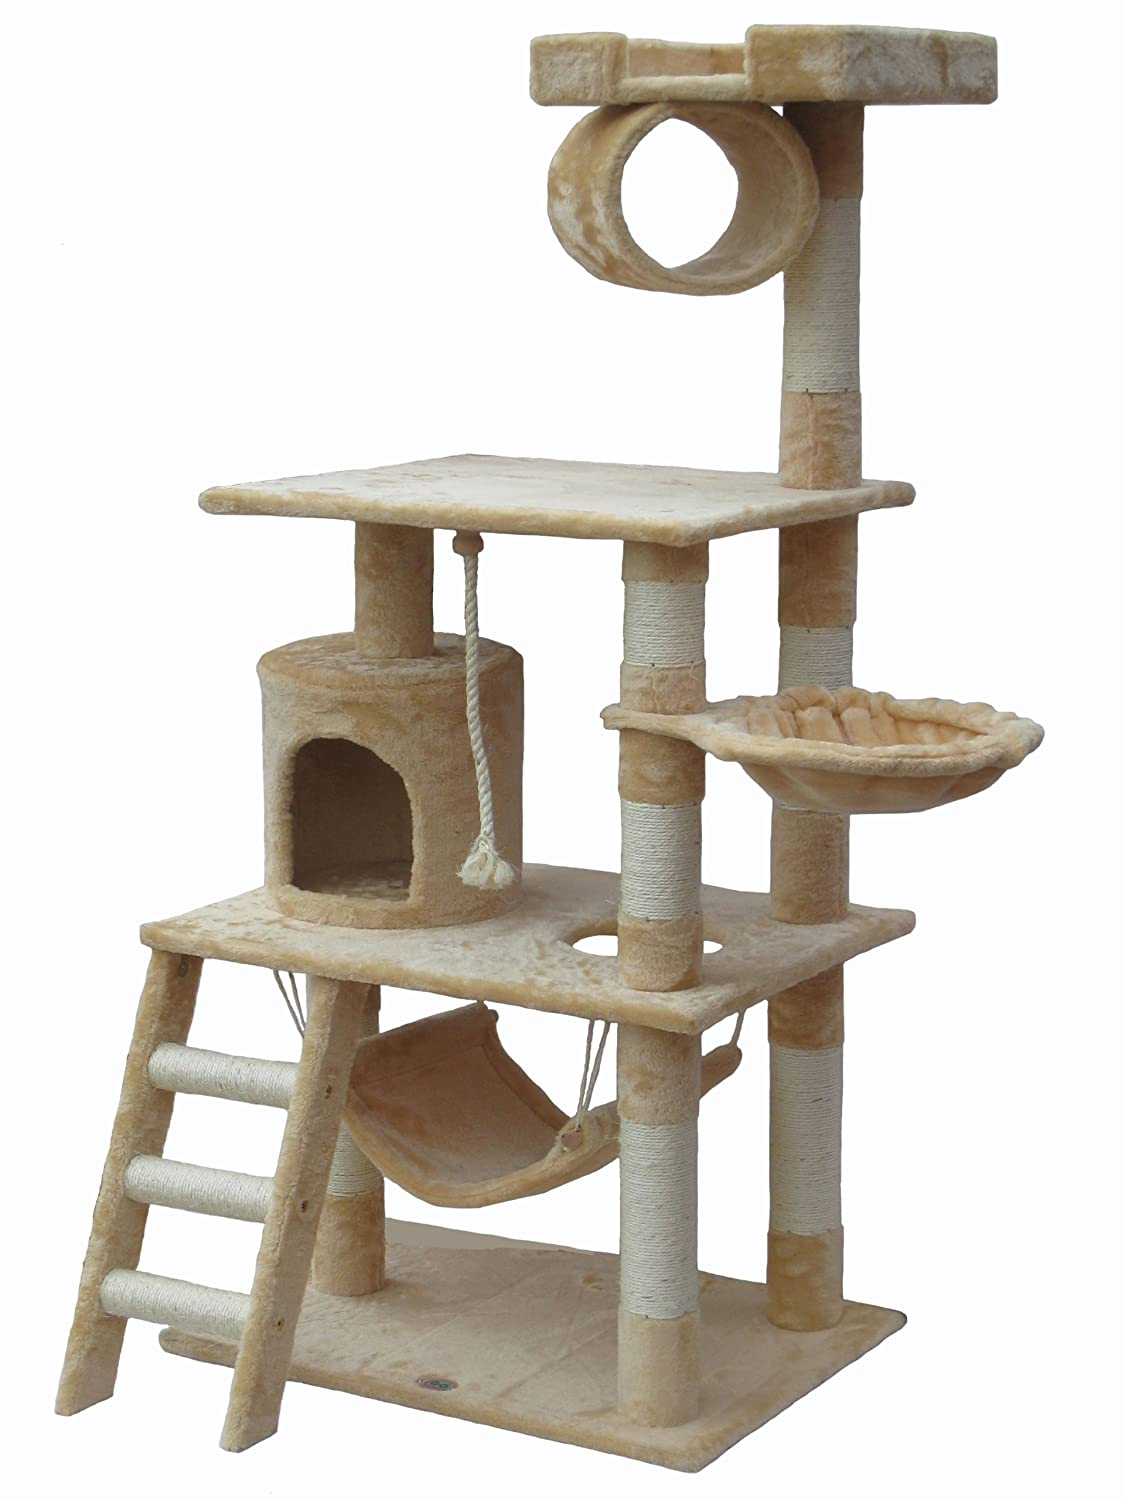 amazoncom  go pet club  tall beige cat tree furniture  -  cat tree tower condo furniture scratcher